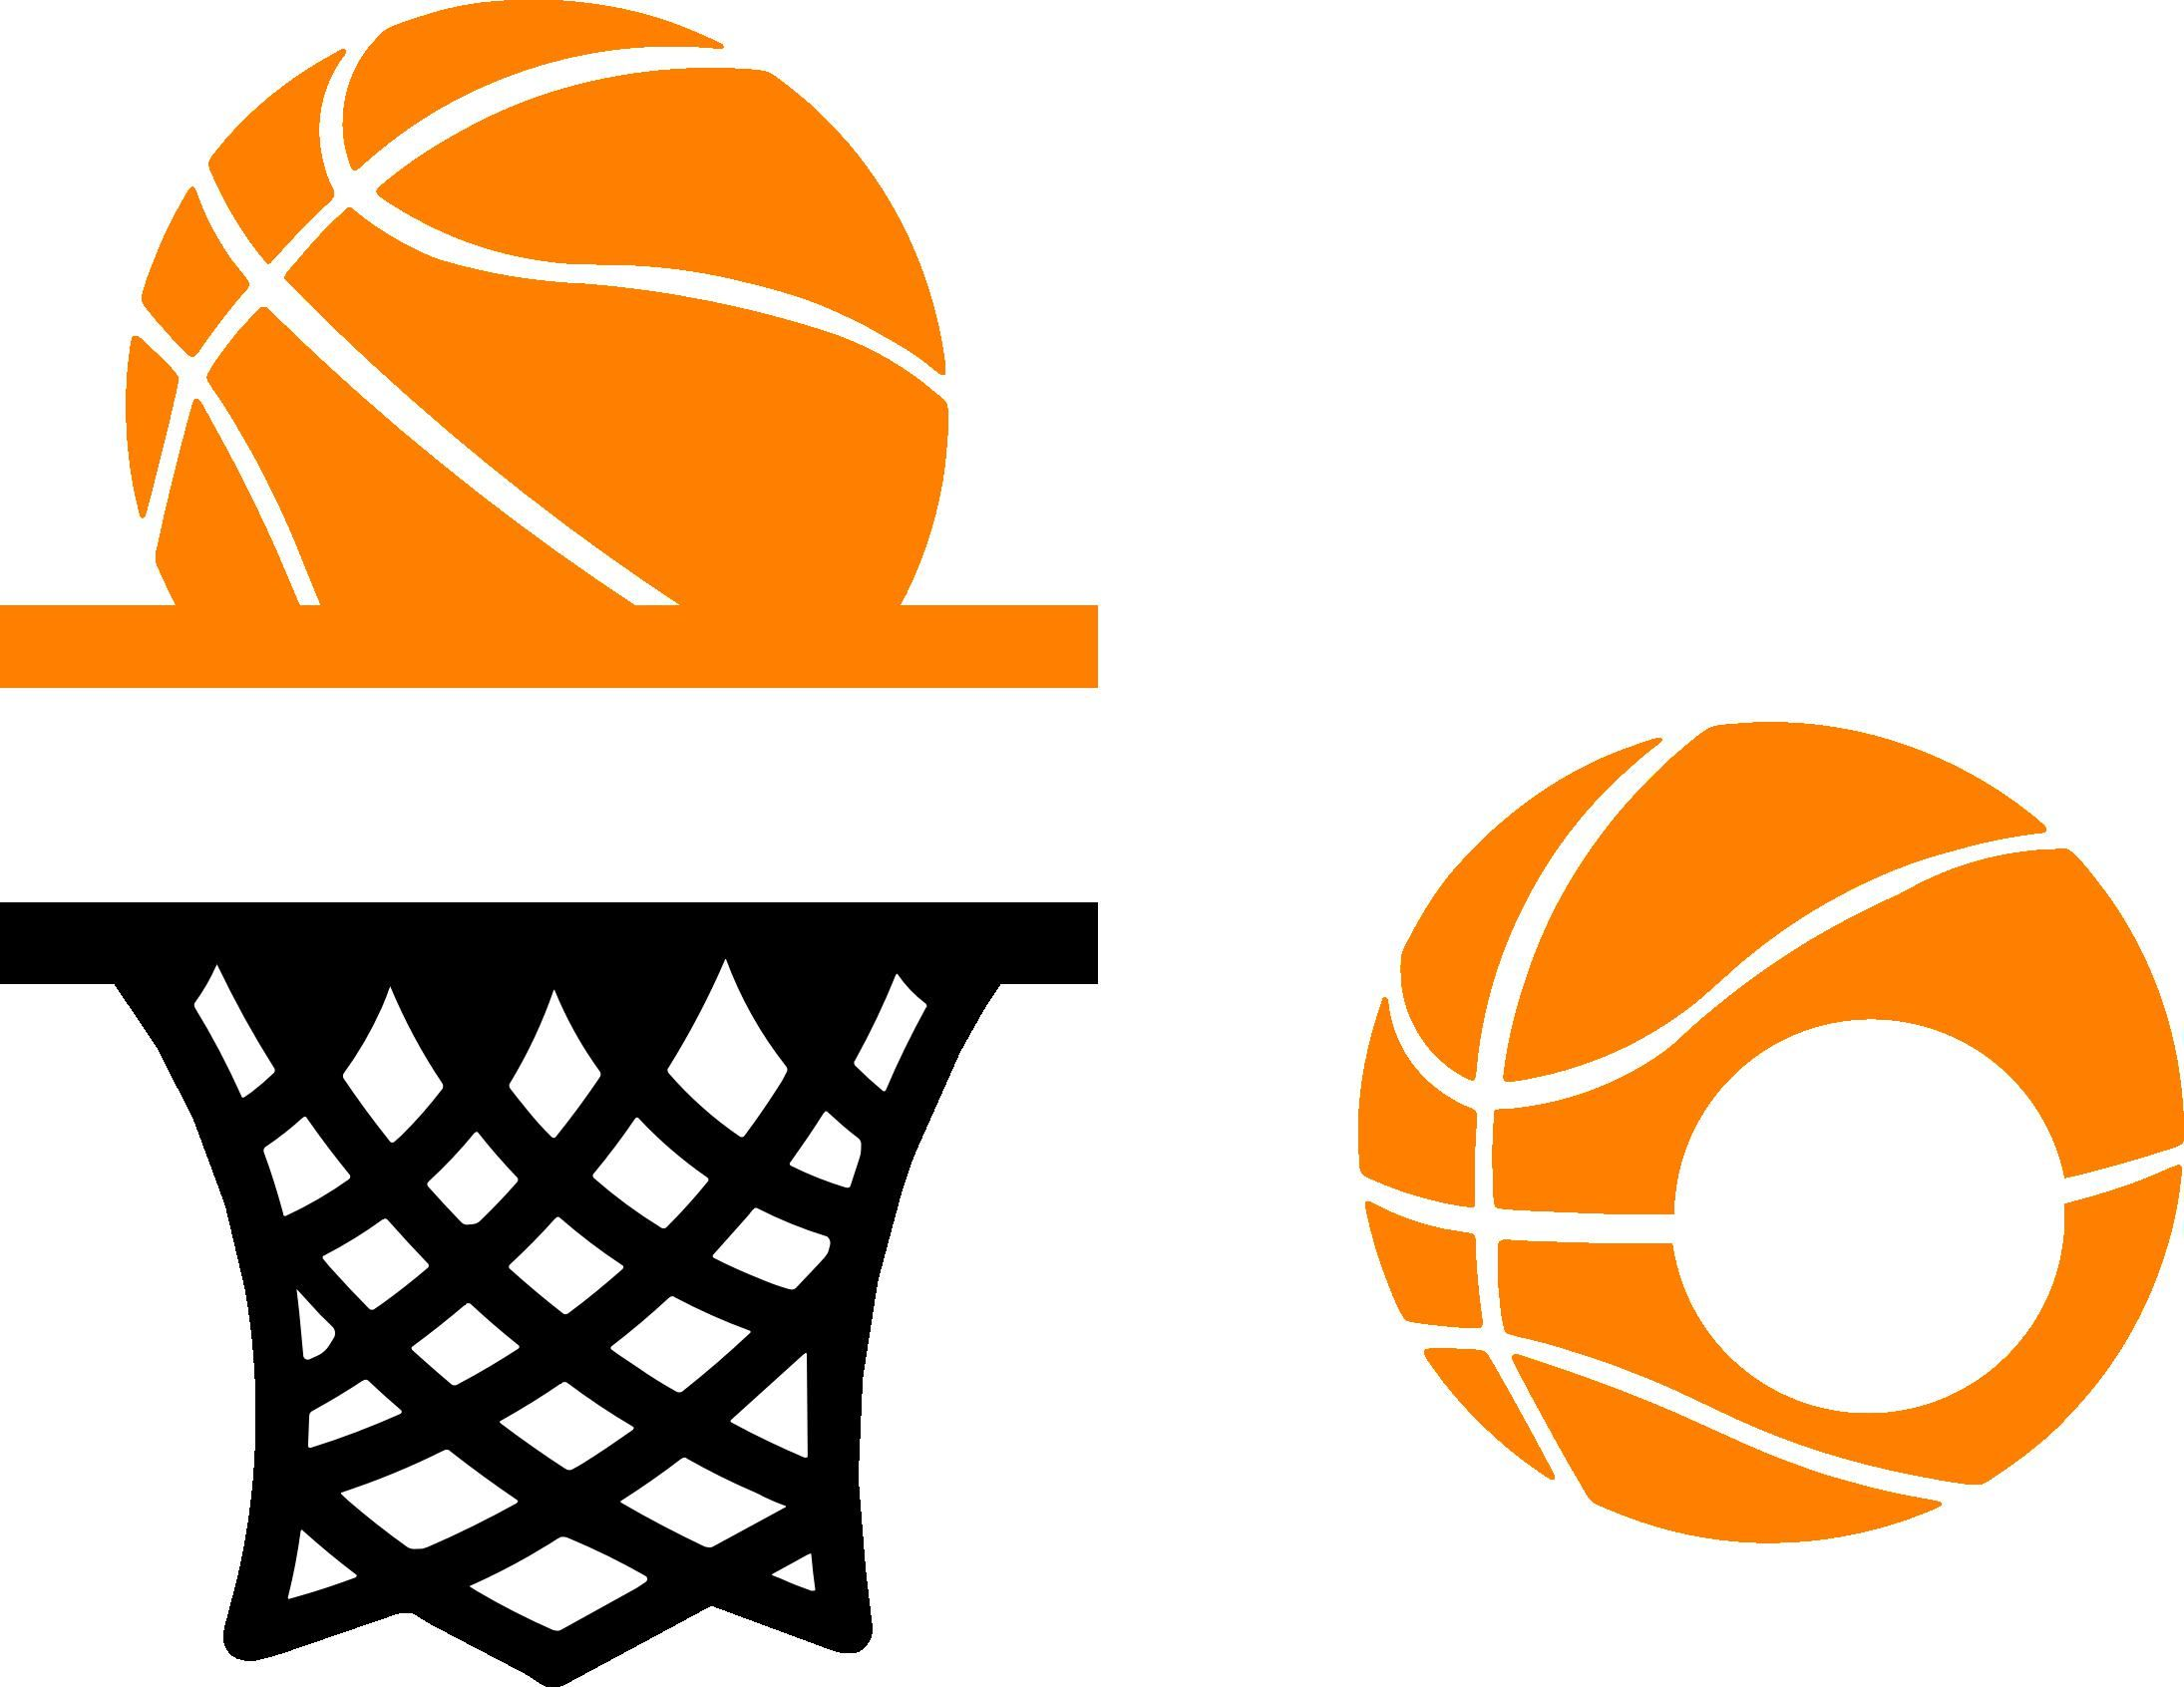 Sports monograms cutting collection. Basketball clipart monogram